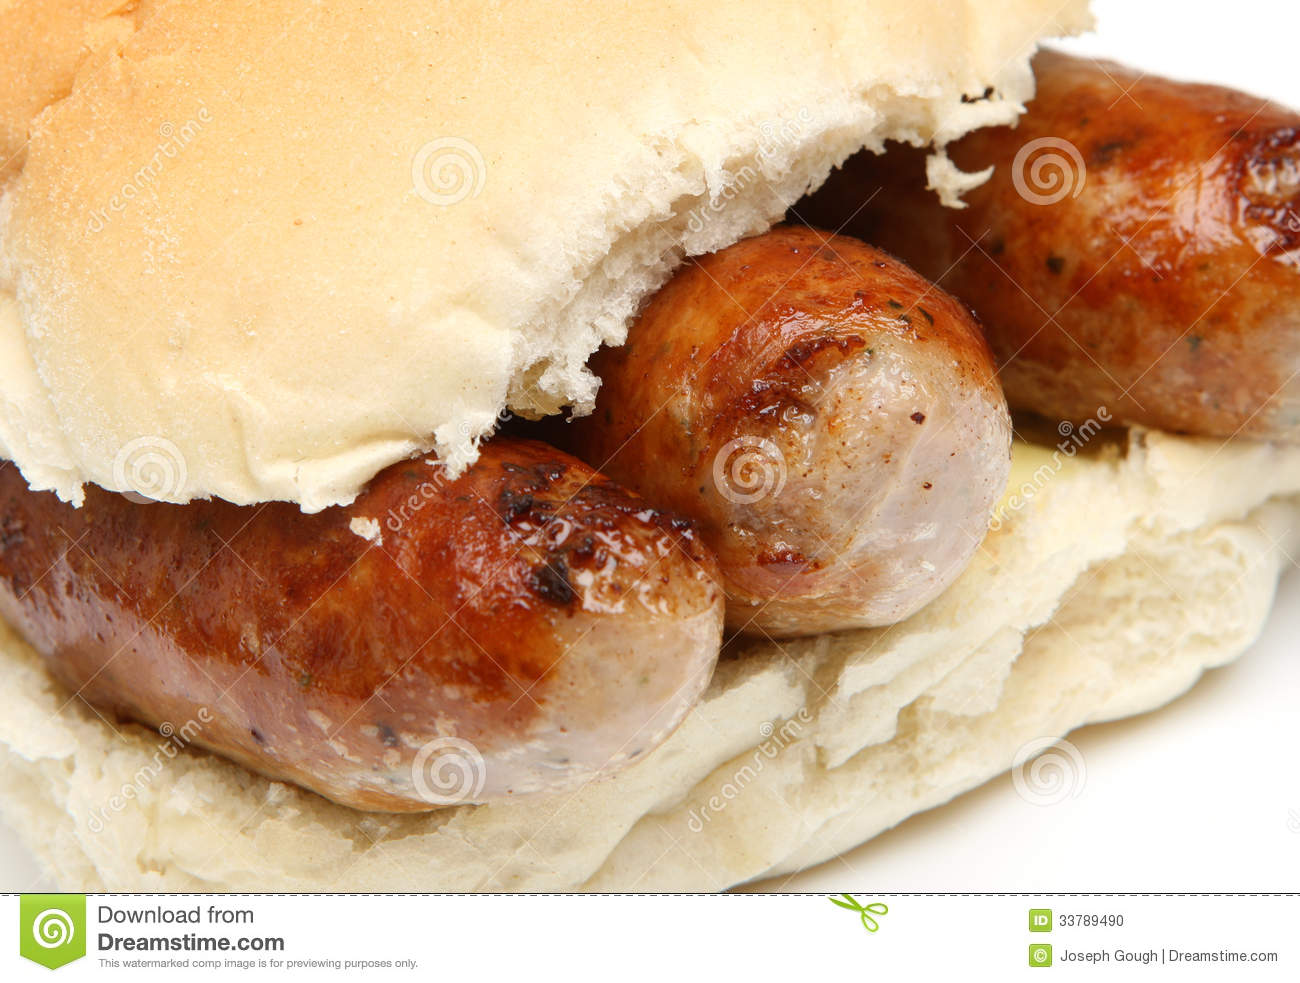 Sausages In Bread Roll Or Bap Sandwich Stock Photo - Image: 33789490